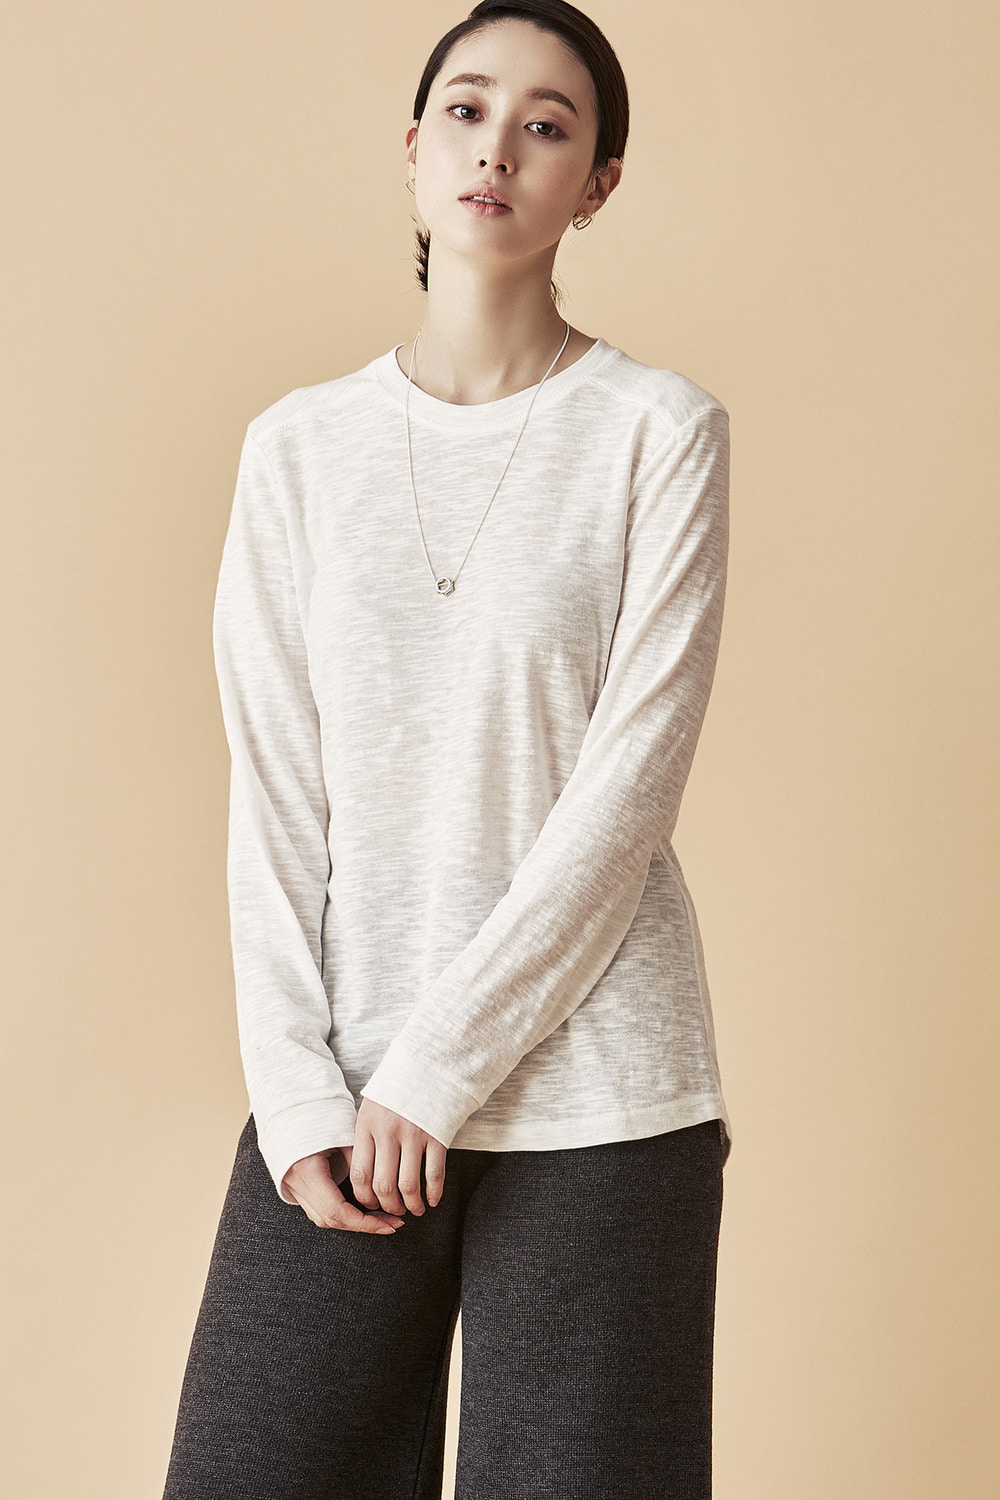 Atelier Slub Cotton Tee